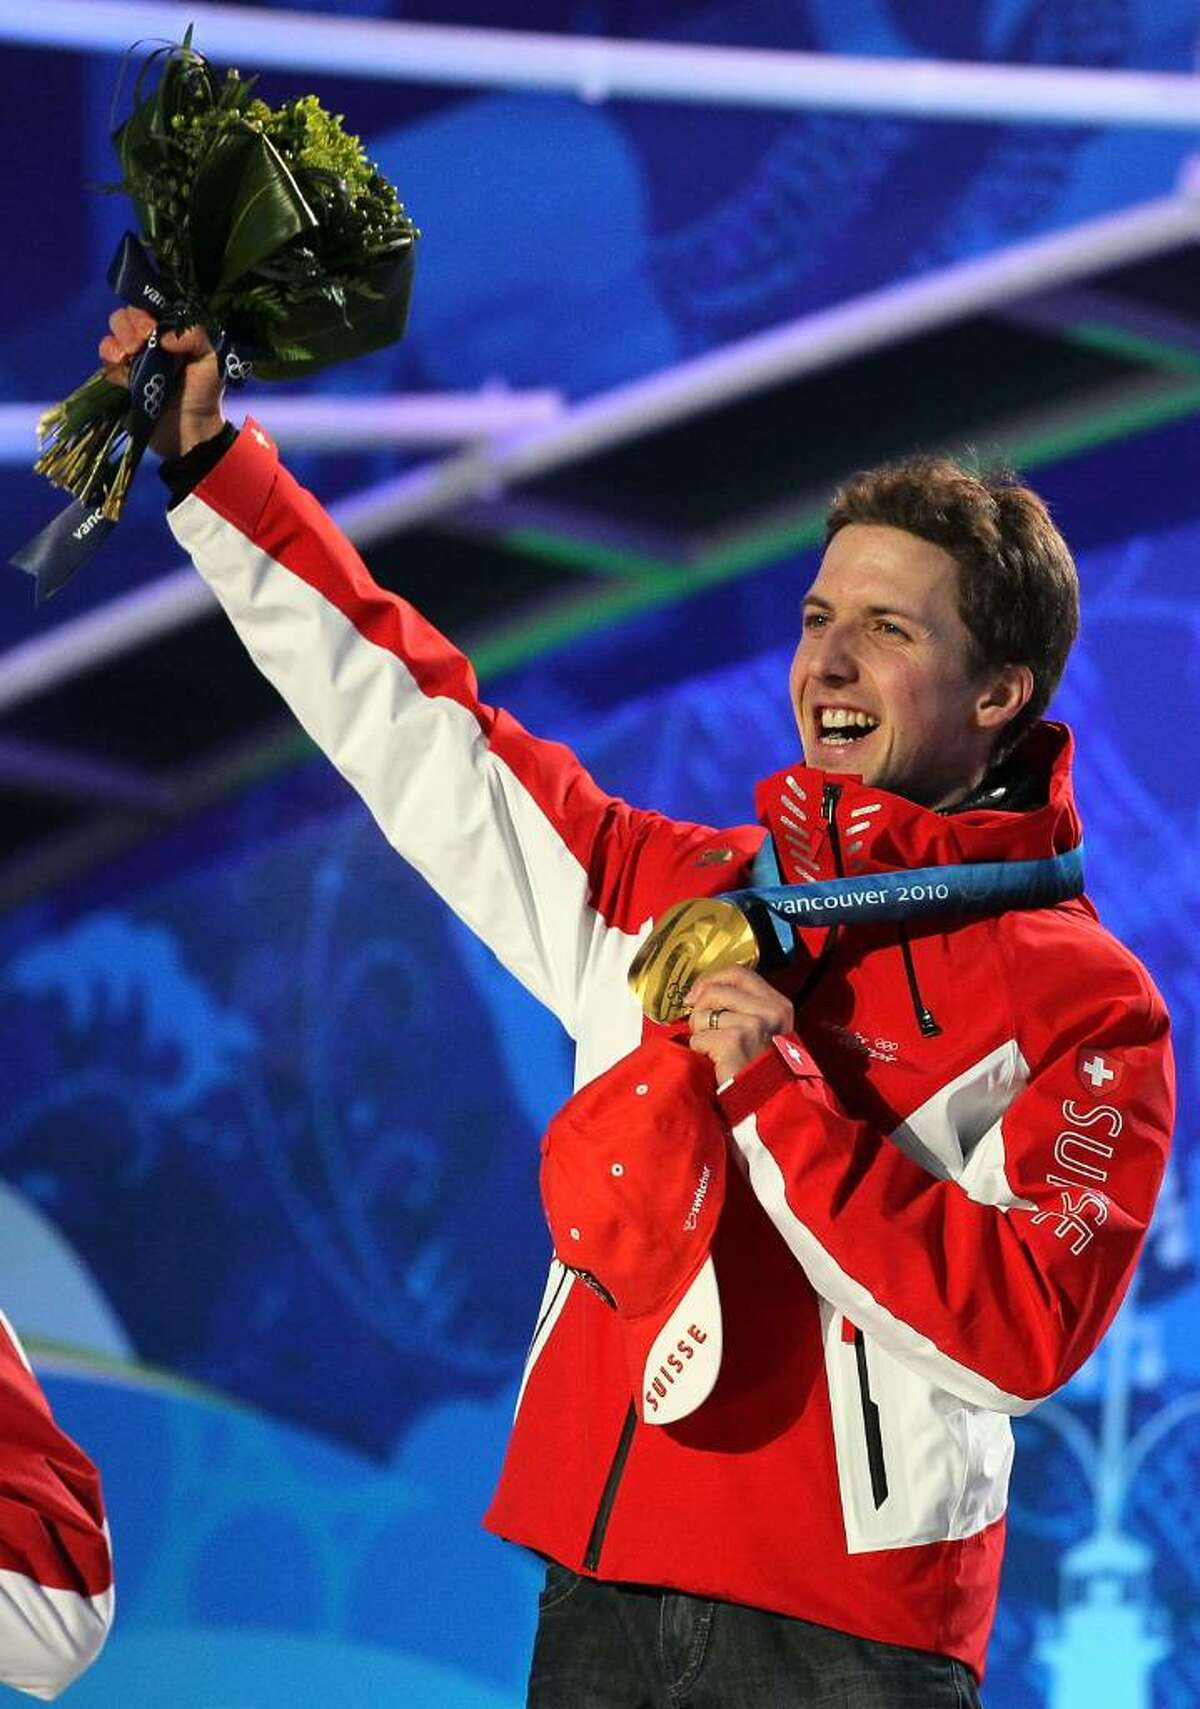 WHISTLER, BC - FEBRUARY 13: Simon Ammann of Switzerland celebrates with his gold medal during the Medal Ceremony for the Ski Jumping Normal Hill Individual on day 2 of the Vancouver 2010 Winter Olympics at Whistler Medals Plaza on February 13, 2010 in Whistler, Canada. (Photo by Al Bello/Getty Images) *** Local Caption *** Simon Ammann